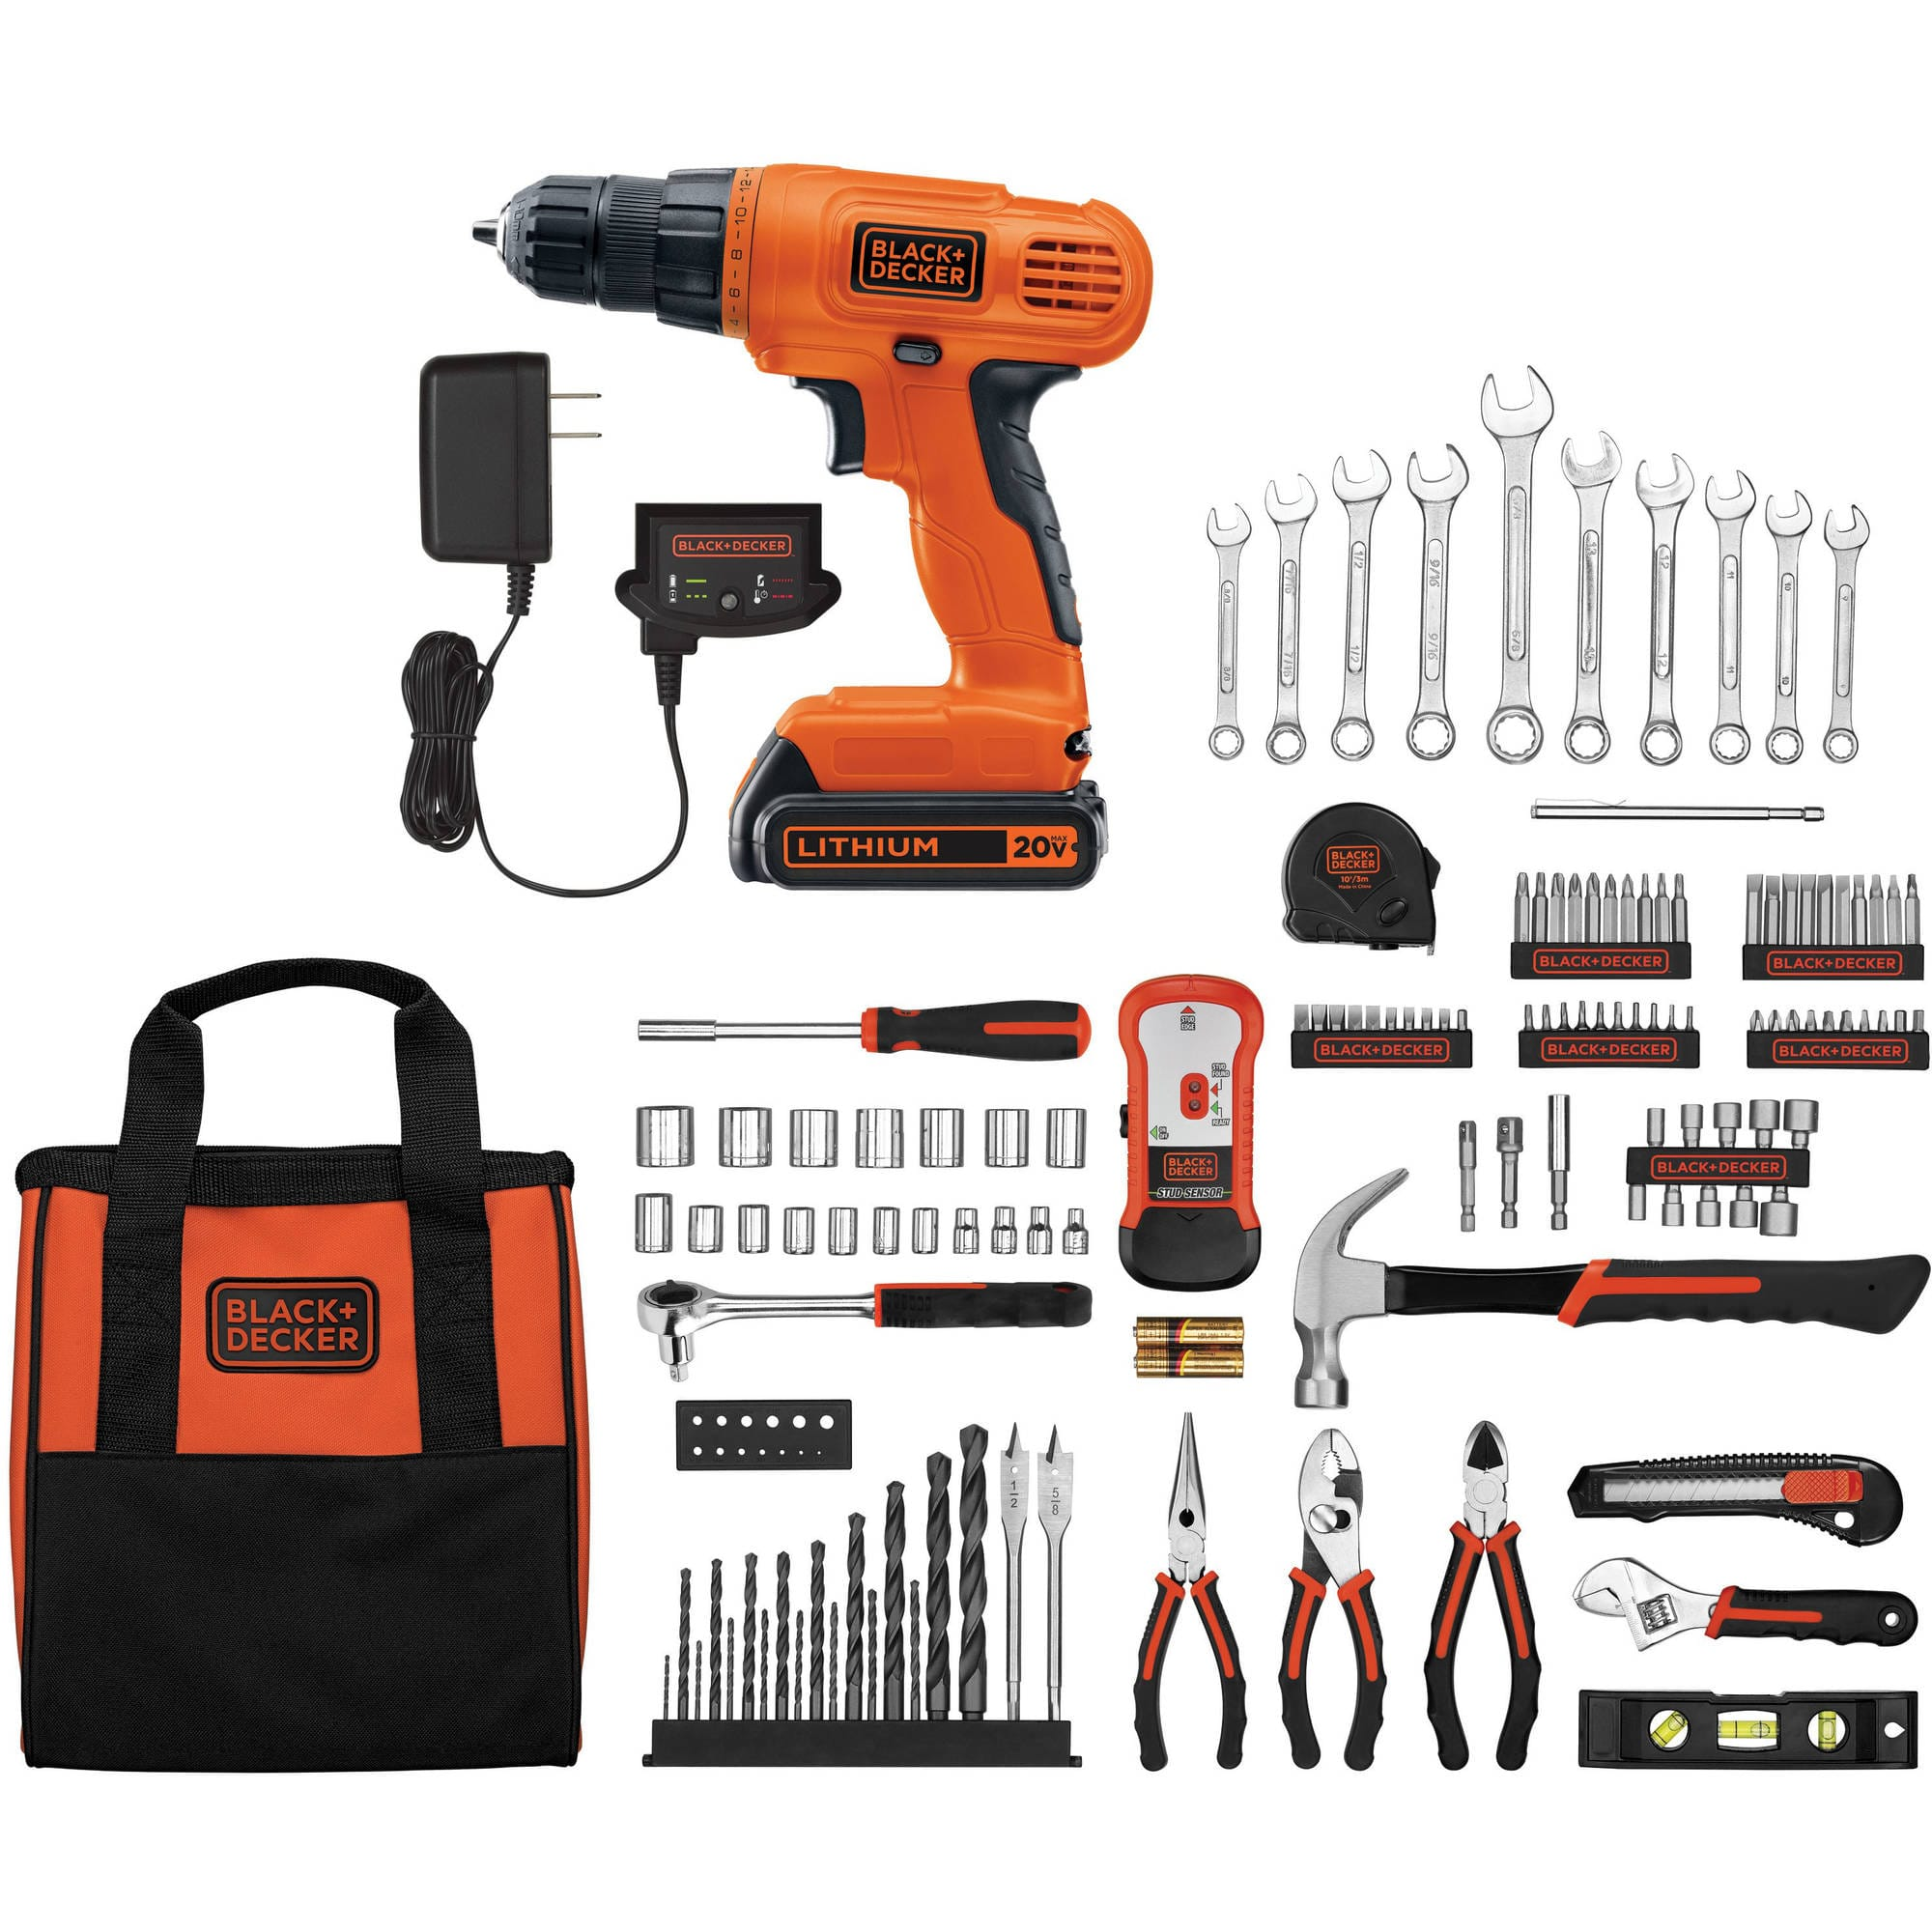 Deal on Black & Decker Drill/Driver and 128-Piece Project Set on Jet.com $69.88